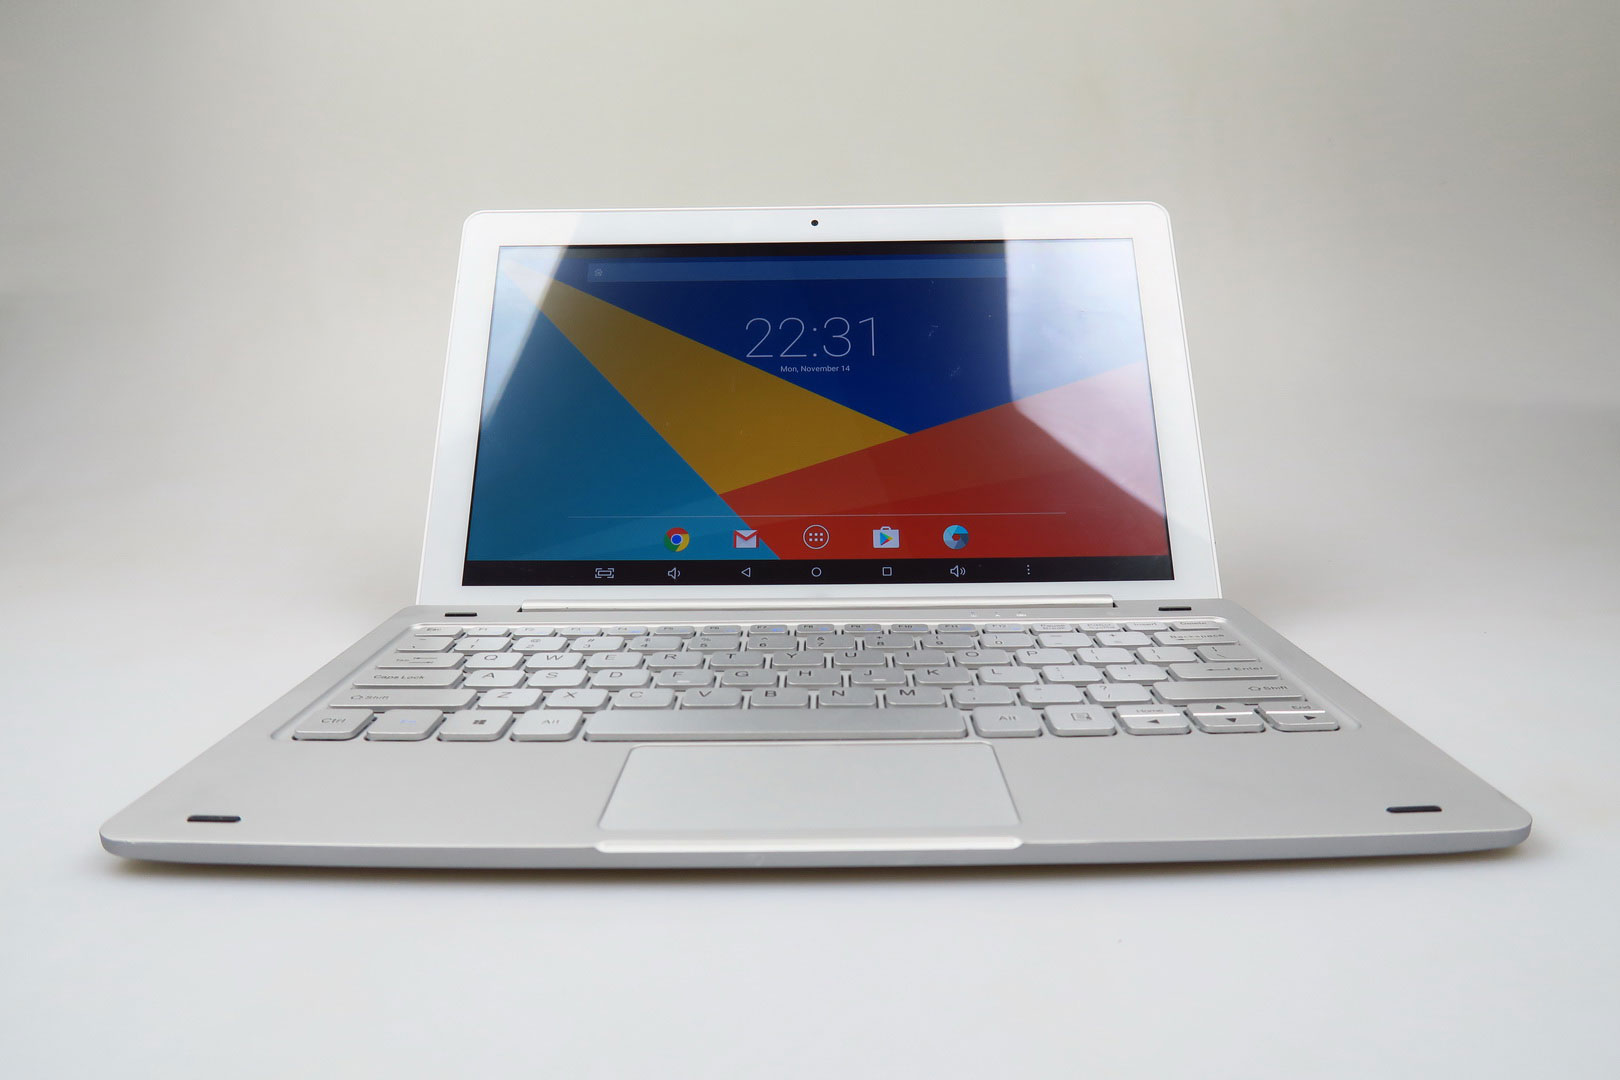 Teclast TBook 16 Pro Review: Solid Design and Build, But ...